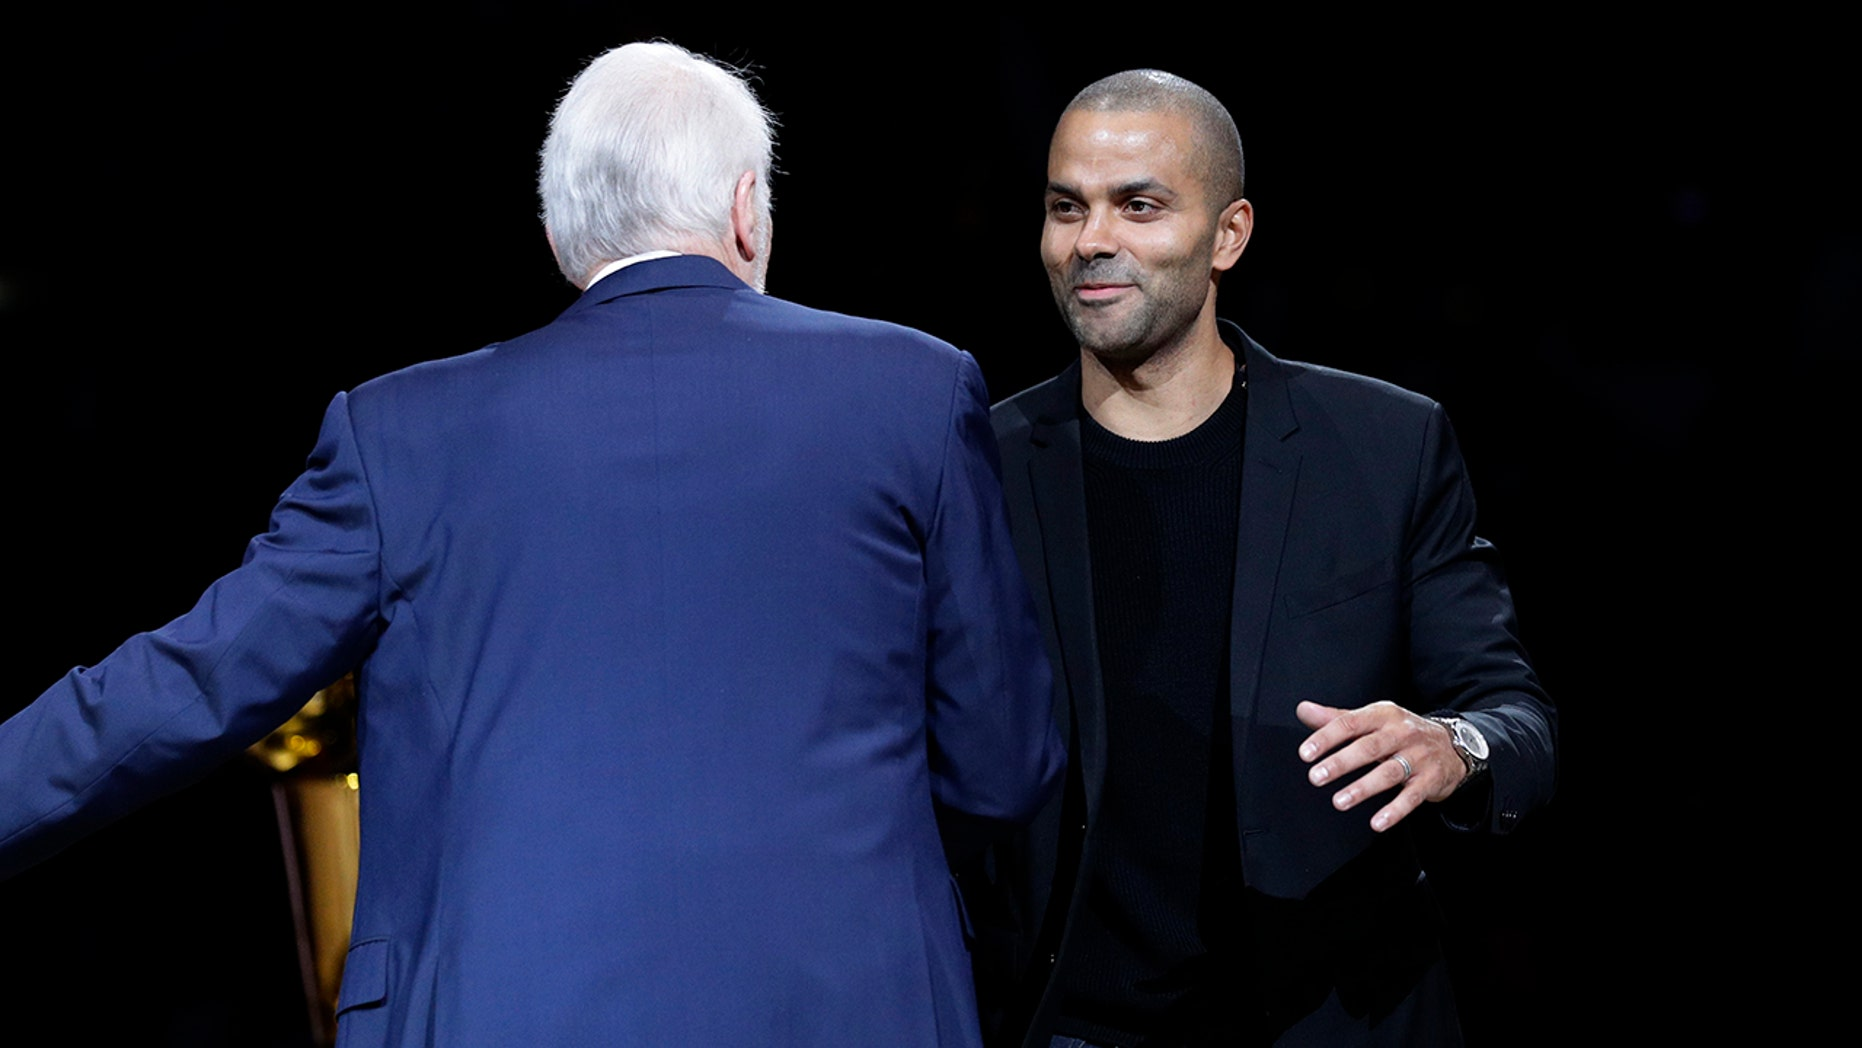 Former San Antonio Spurs guard Tony Parker, right, reaches out to hug former coach Gregg Popovich during Parker's retirement ceremony after the team's NBA basketball game against the Memphis Grizzlies in San Antonio, Monday, Nov. 11, 2019. (AP Photo/Eric Gay)